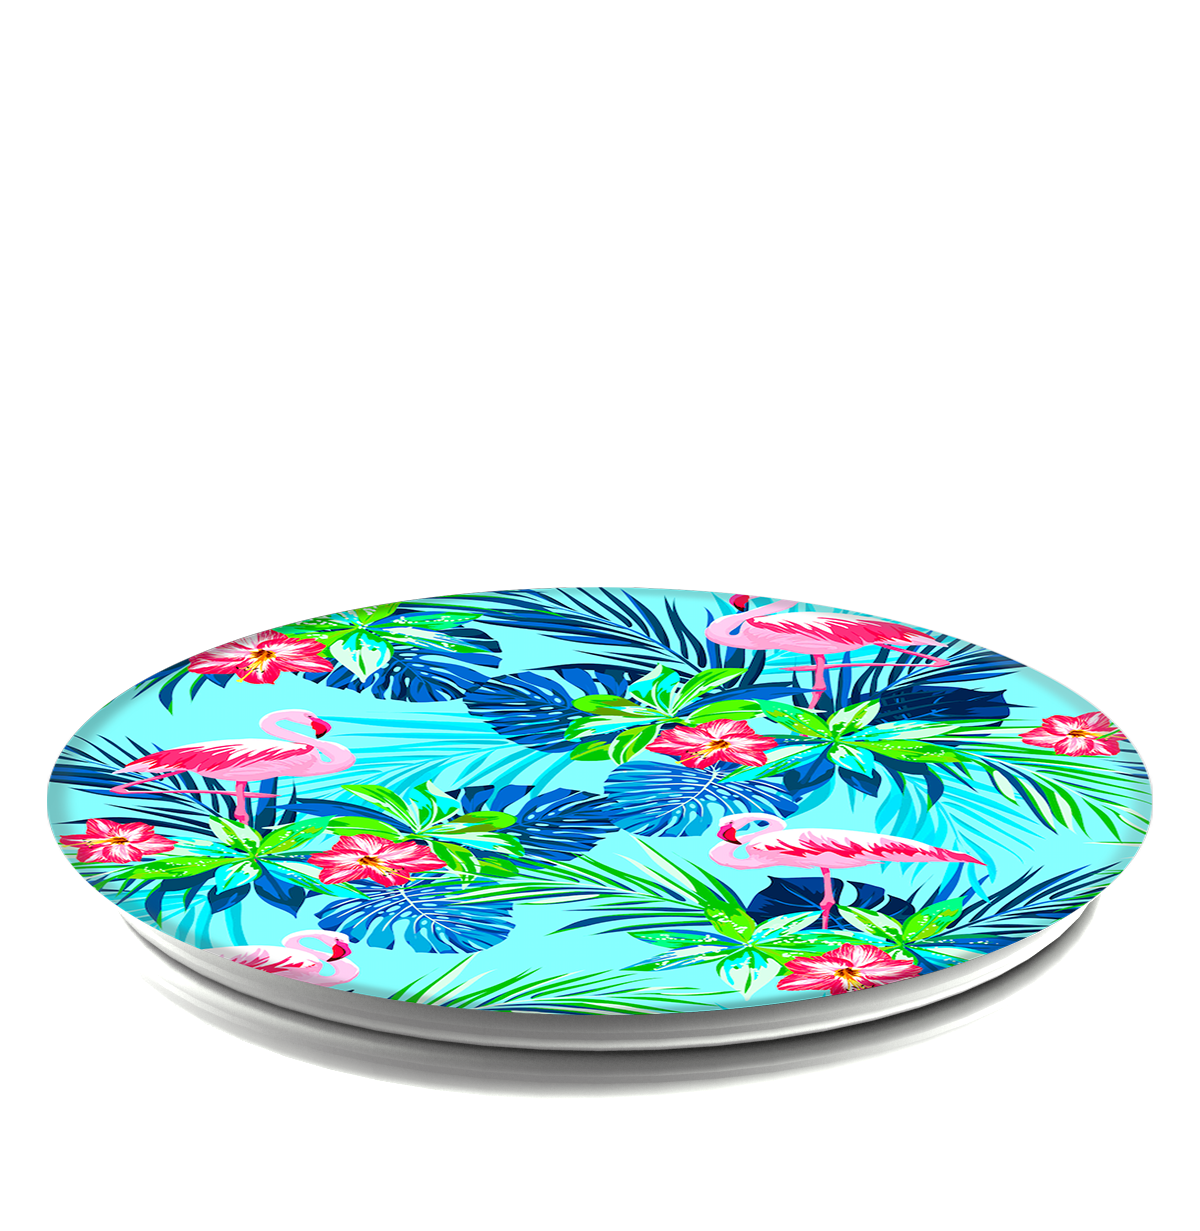 Rainforest Flamingos 雨林鶴, PopSockets